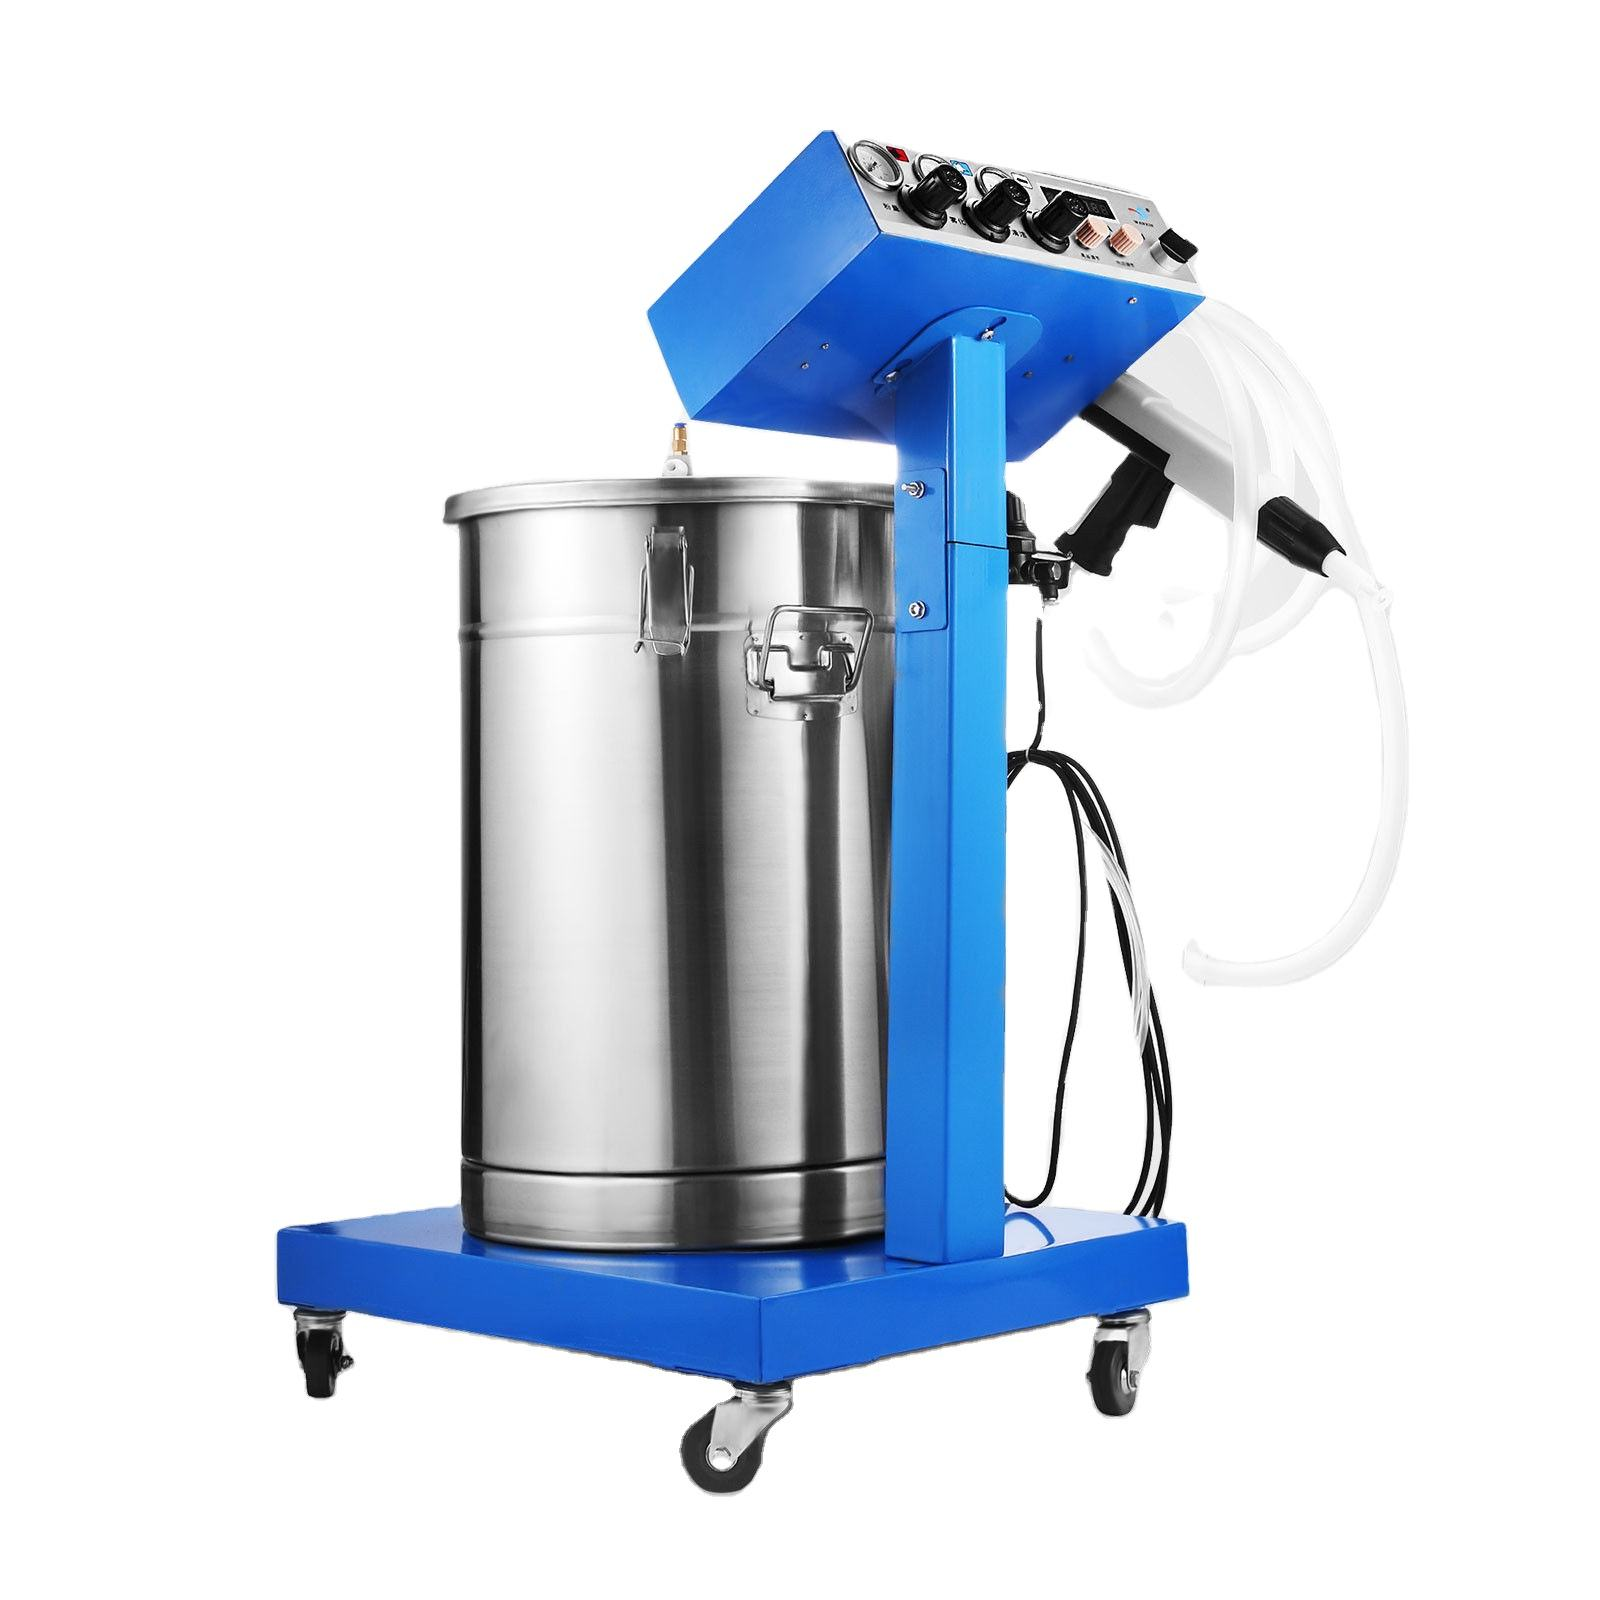 Electrostatic Powder Coating System with Spray Gun WX-958 Machine Spraying